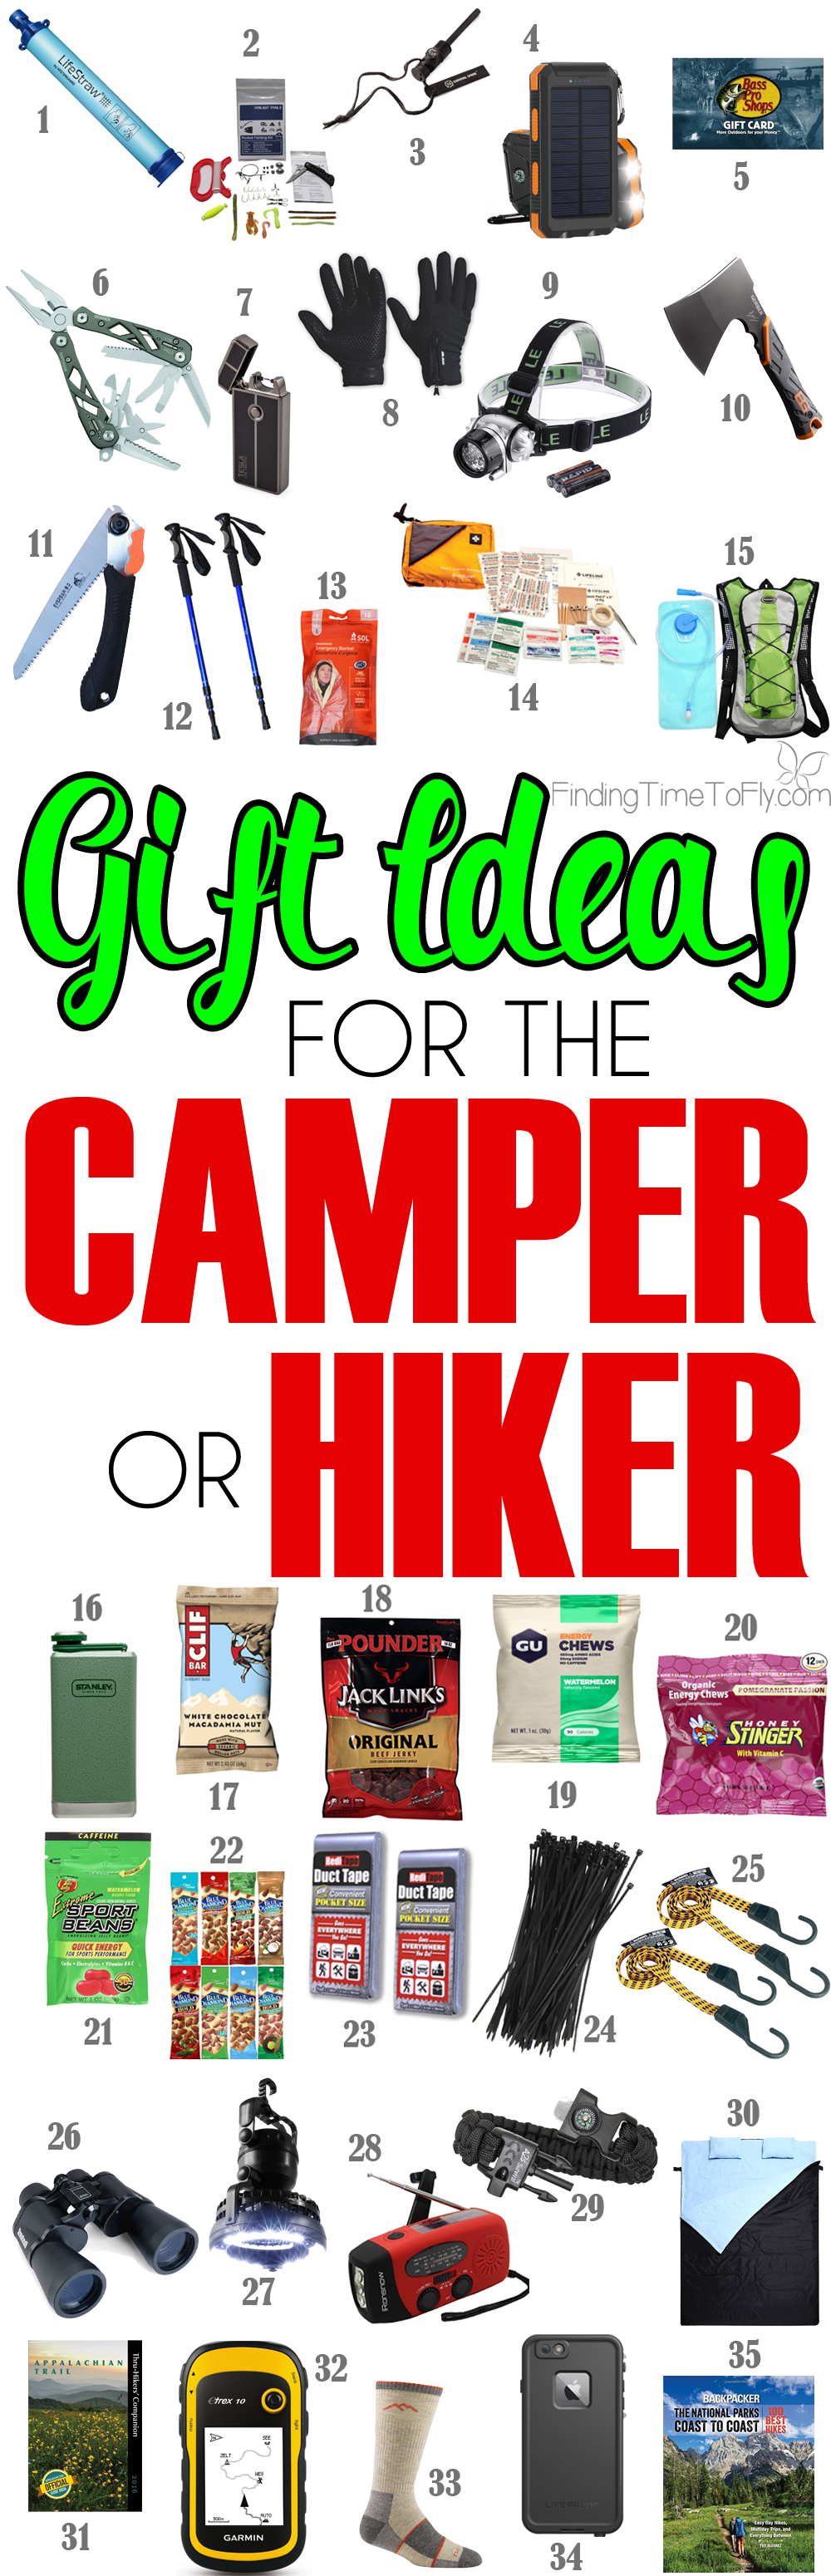 Christmas Gift Ideas For Outdoorsmen Part - 34: These Are Great Gift Ideas For The Outdoorsman Who Loves To Camp And Hike!